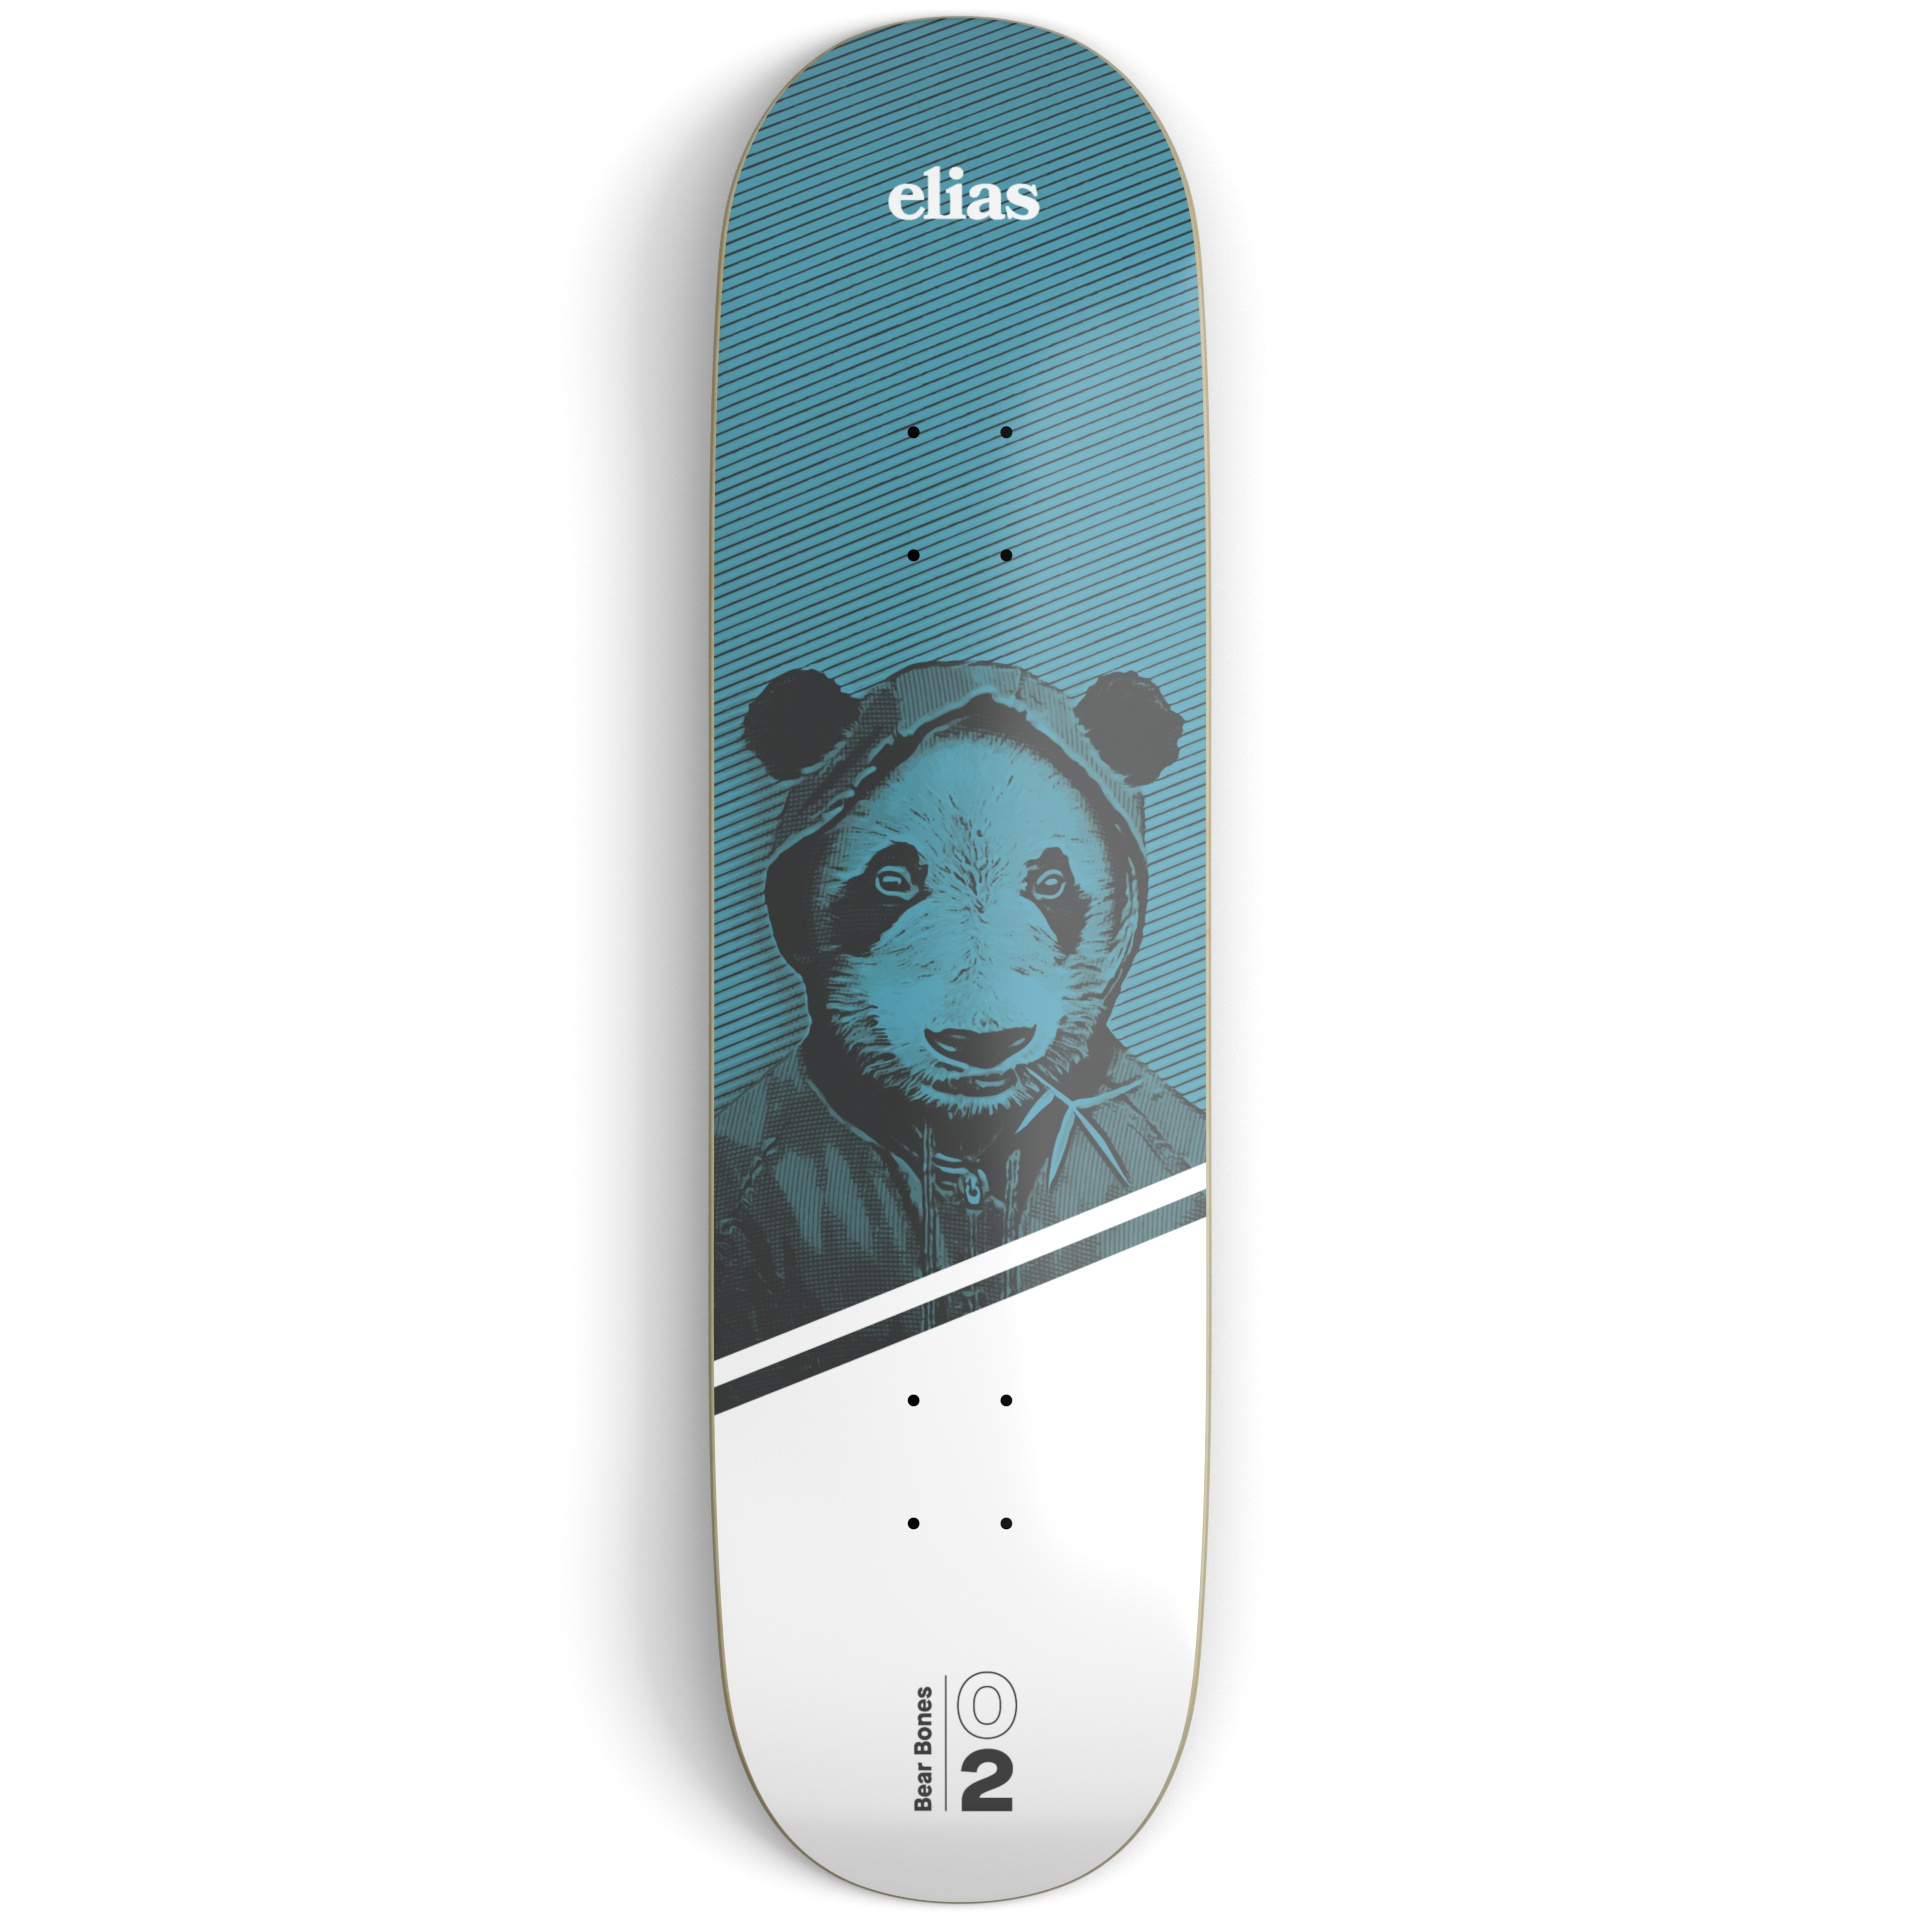 Blue and white skateboard deck on a light grey surface printed with an illustration of a panda bear and white and black text